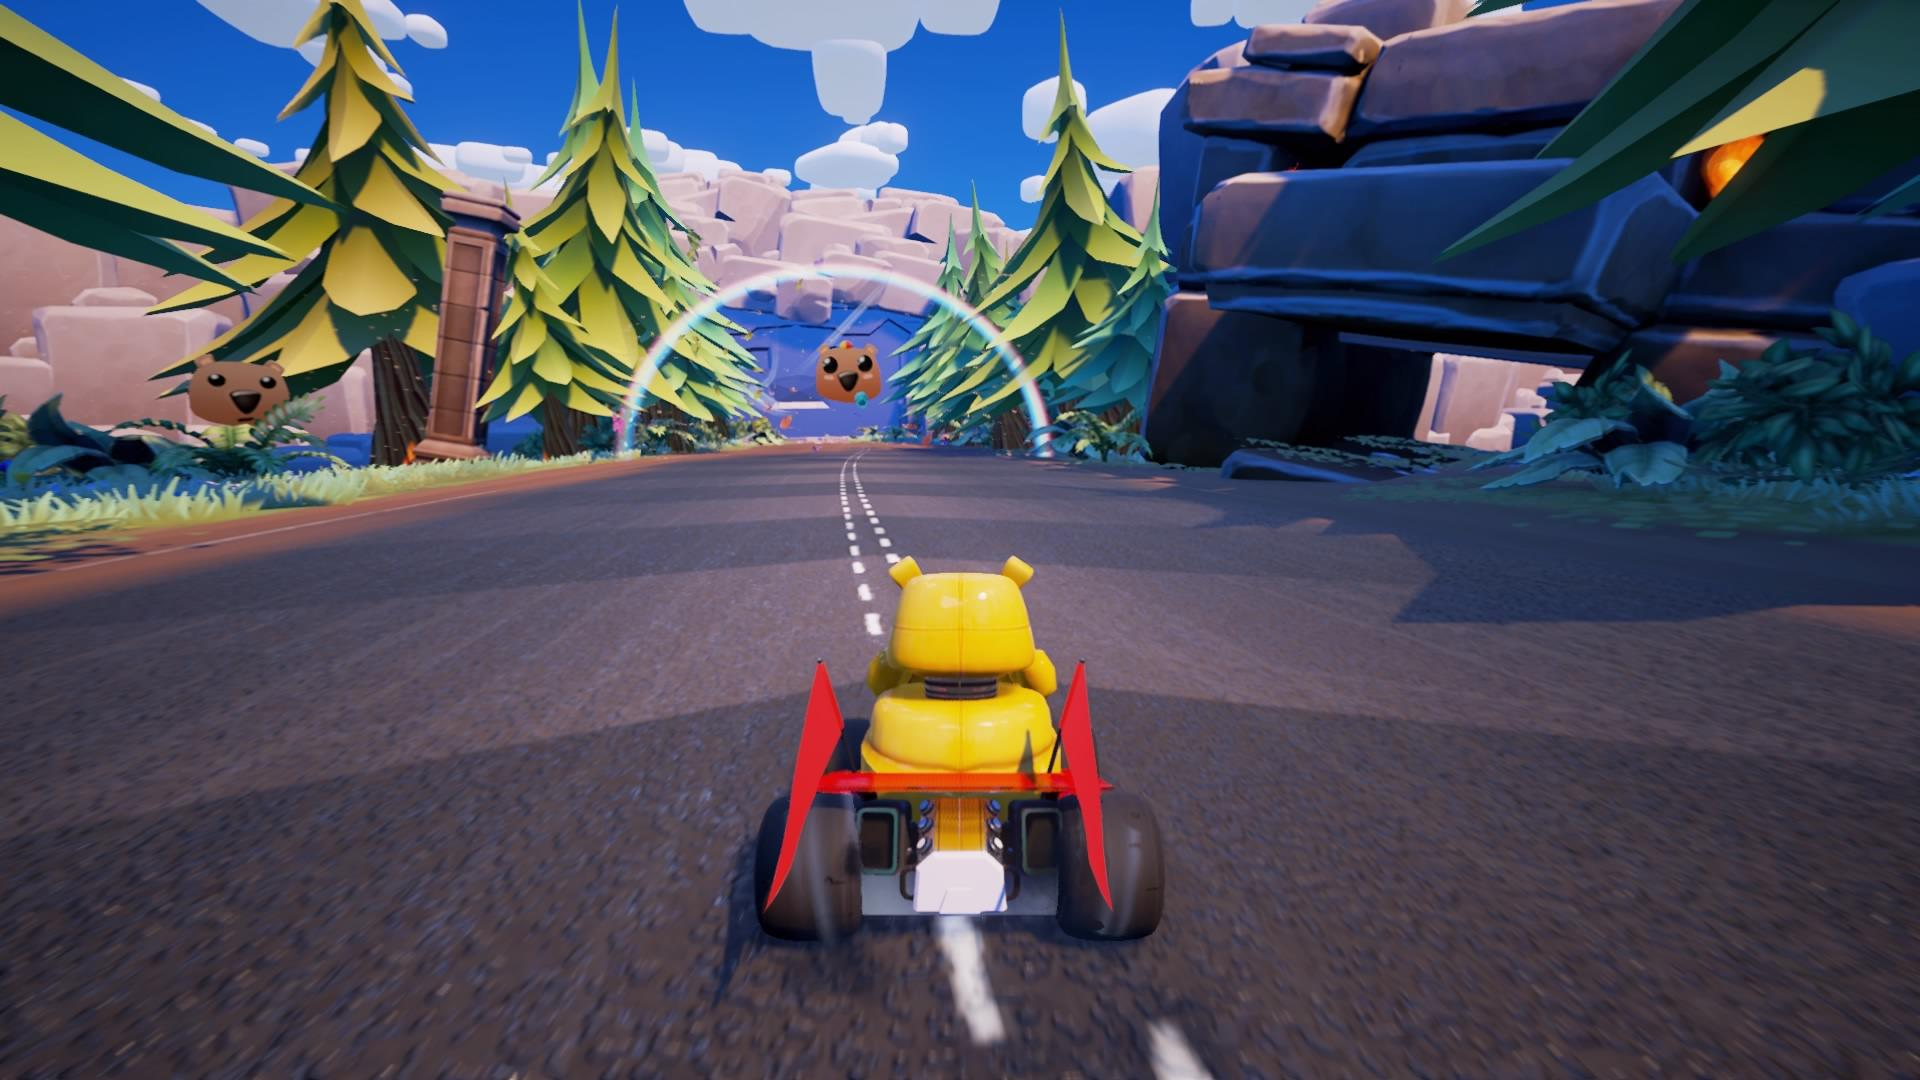 Bears Can't Drift!? is pawsibly the best karting game on PS4